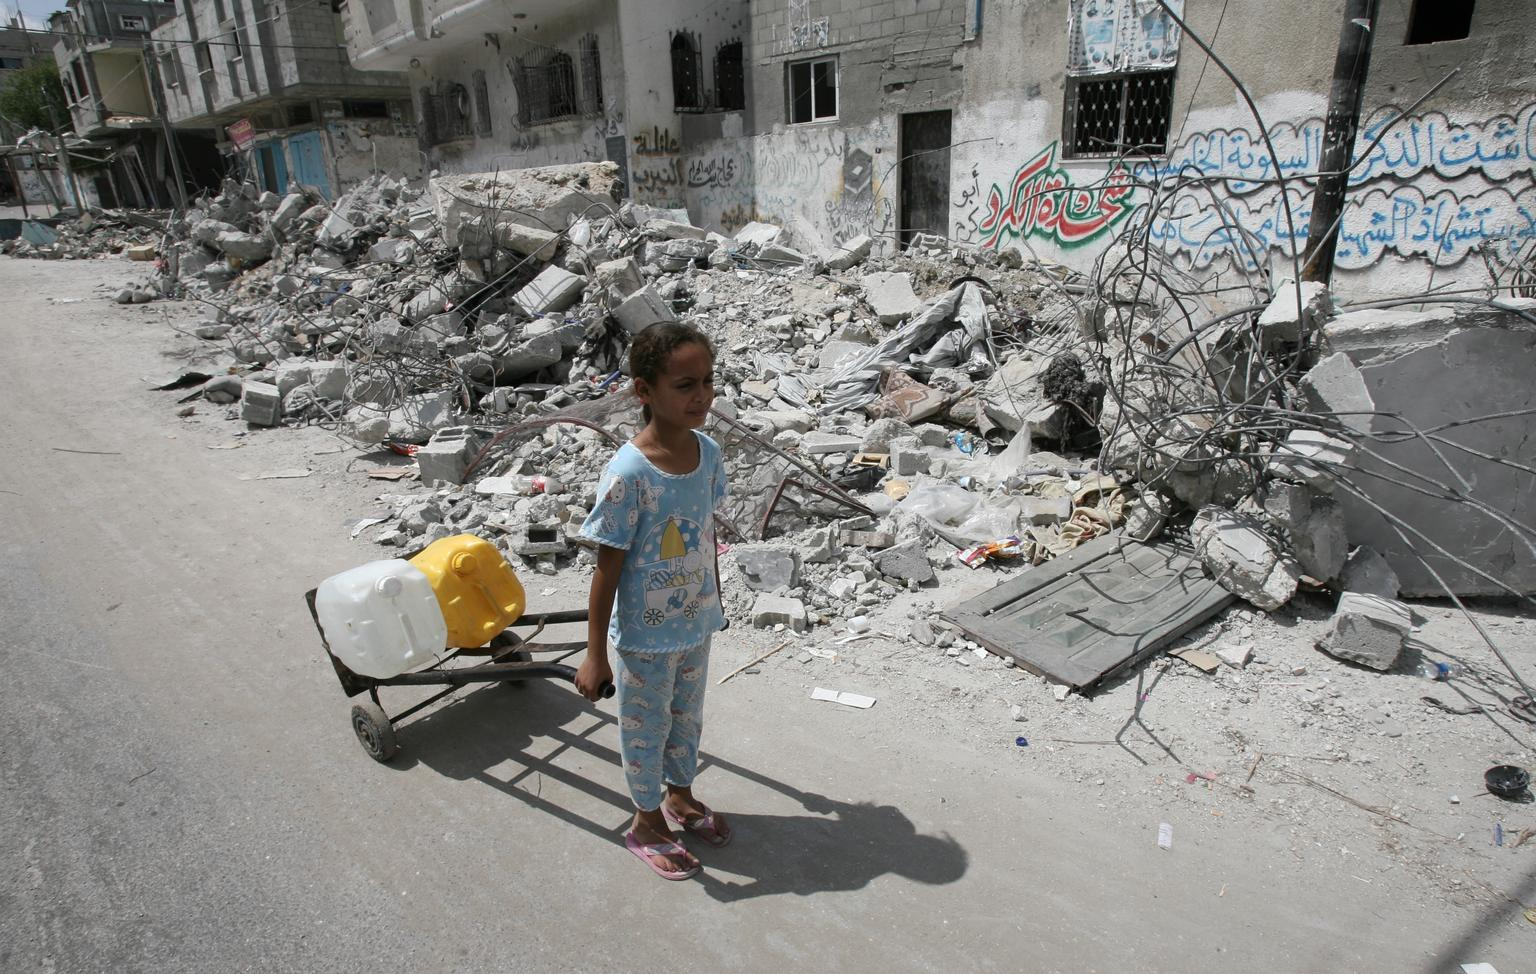 On 19 July 2014 in the State of Palestine, a girl transports jerrycans filled with water, in the town of Rafah in southern Gaza. © UNICEF/NYHQ2014-0978/El Baba